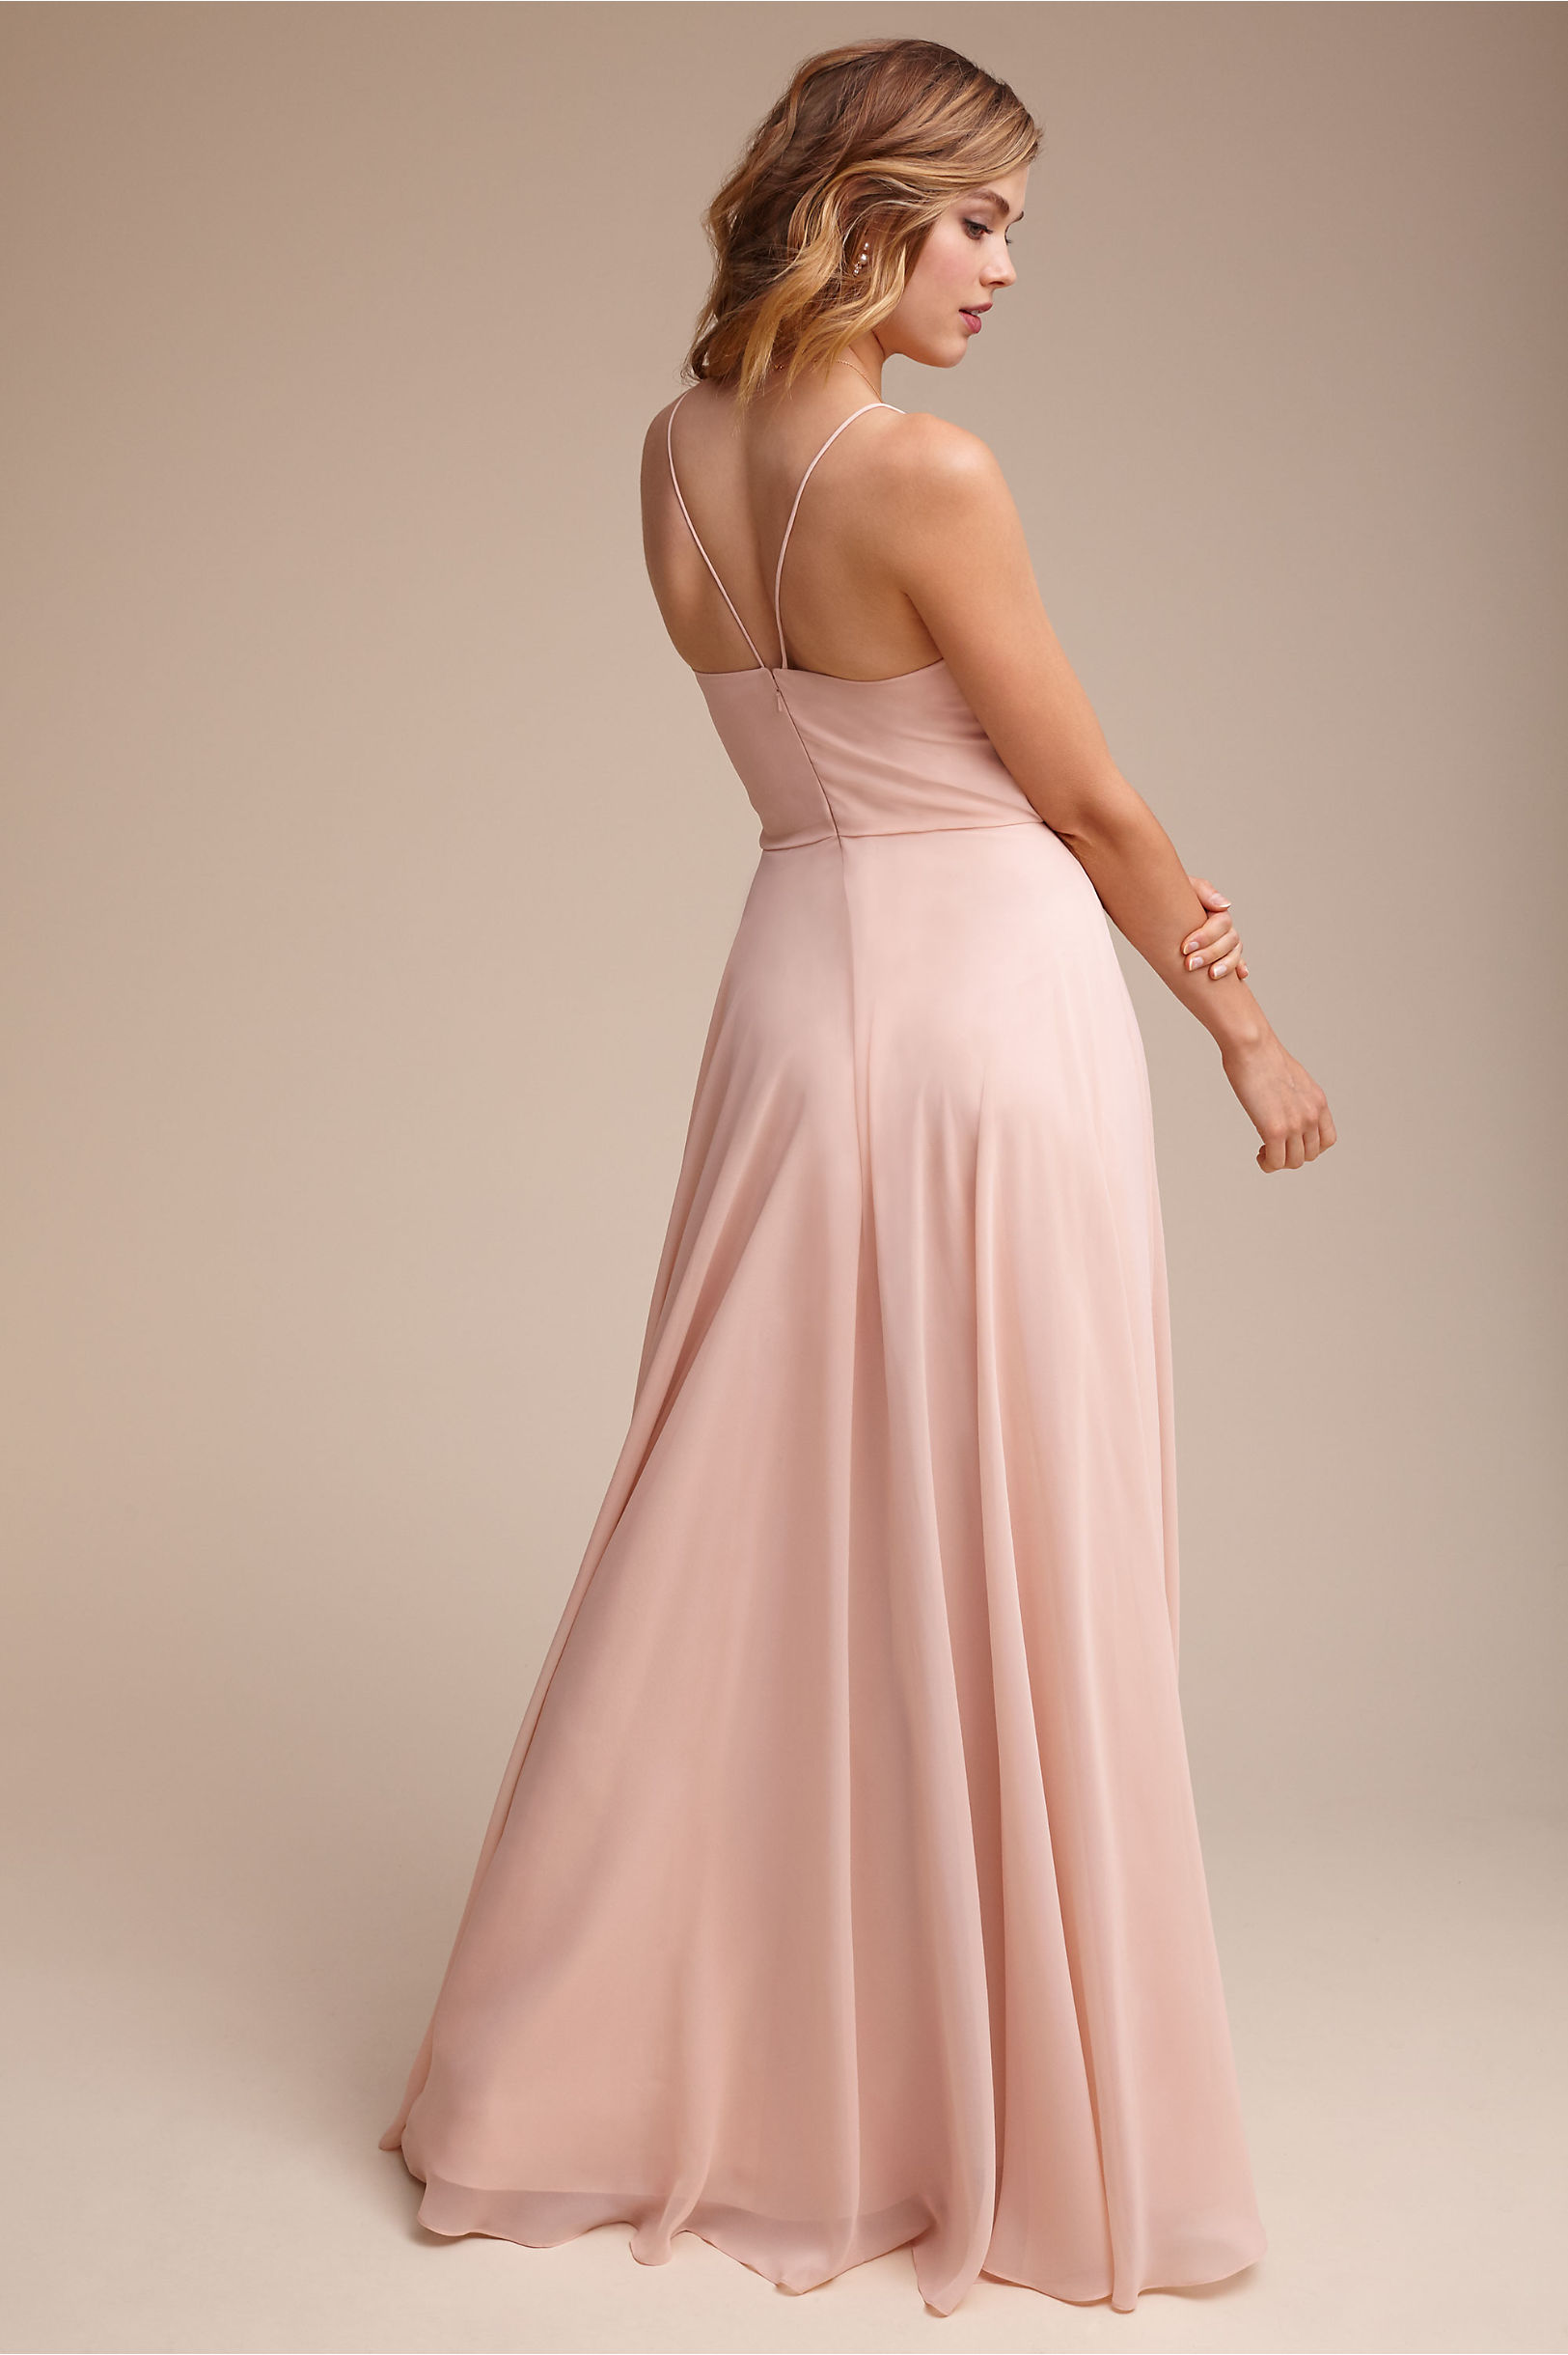 Inesse Dress Blush in Bridesmaids   Bridal Party  371b5d5380276